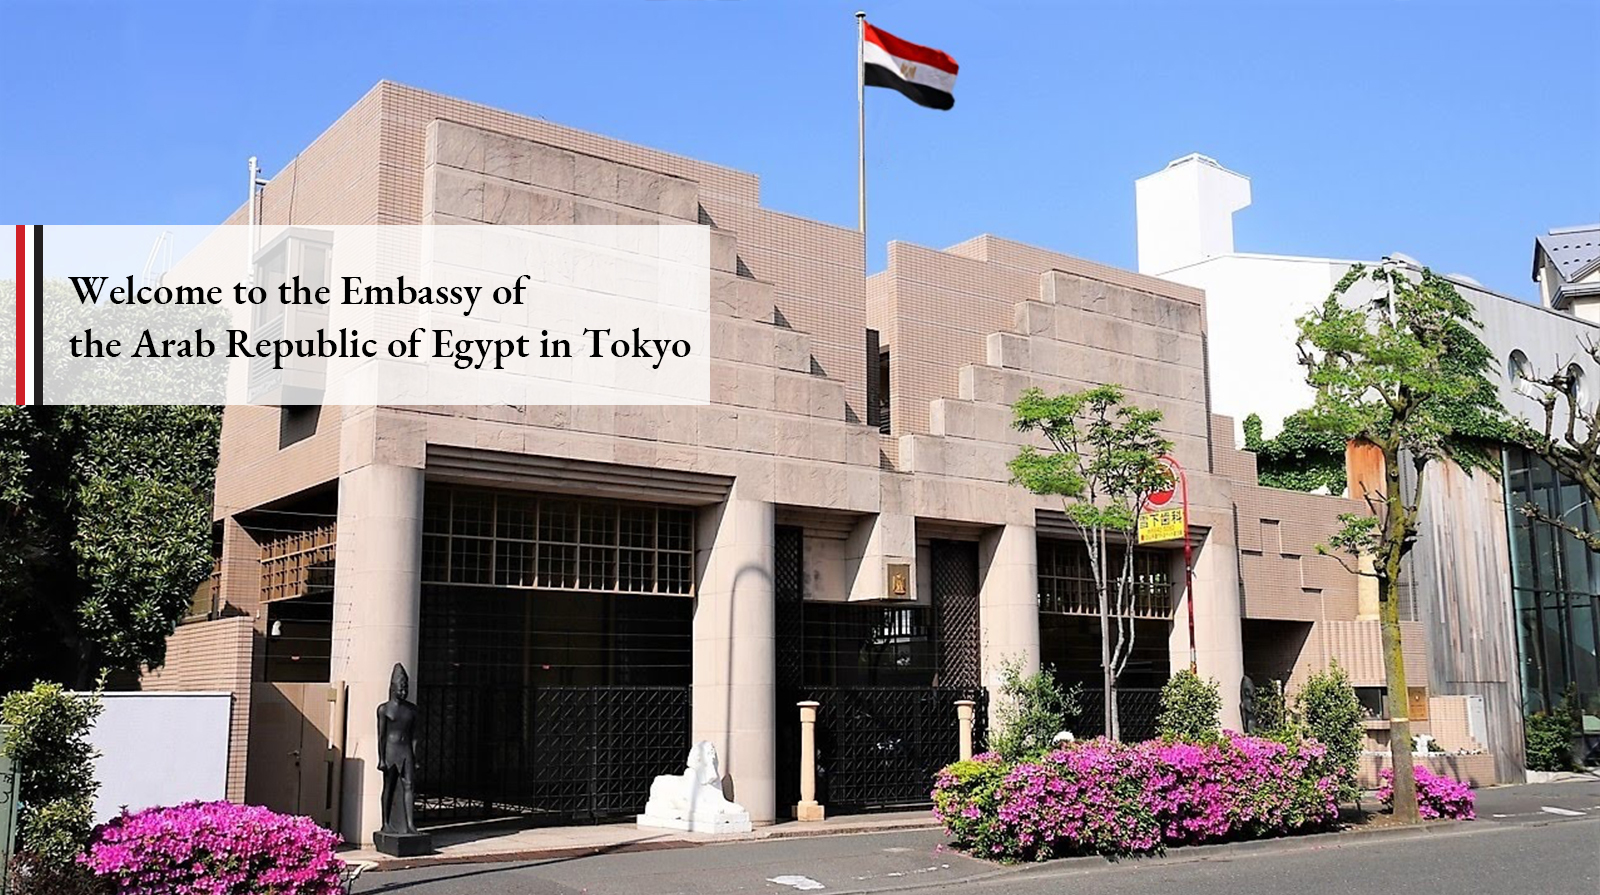 Welcome to the Embassy of the Arab Republic of Egypt in Tokyo